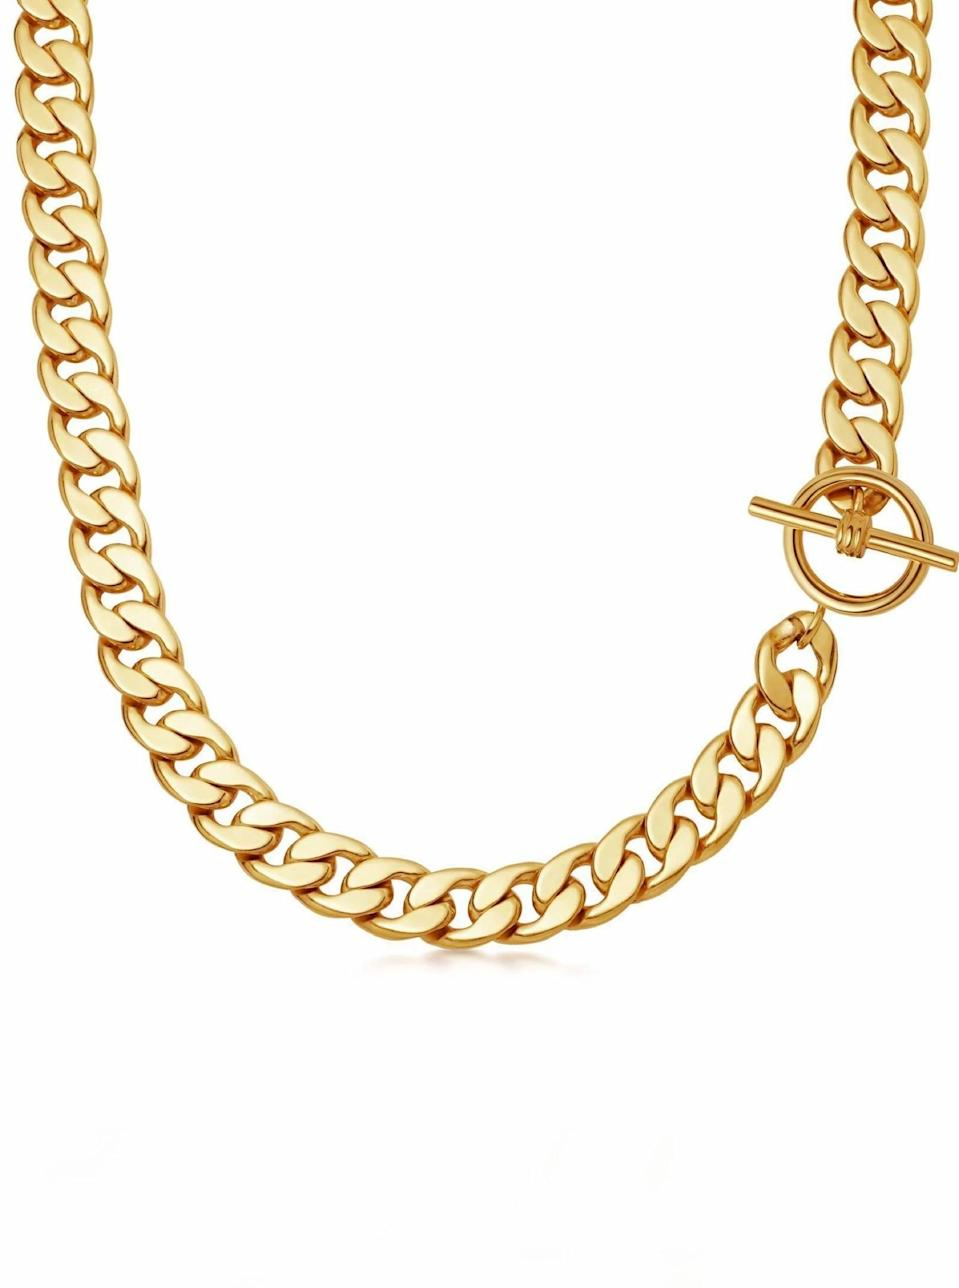 """$420, Missoma. <a href=""""https://www.missoma.com/products/lucy-williams-gold-t-bar-chunky-chain-necklace"""" rel=""""nofollow noopener"""" target=""""_blank"""" data-ylk=""""slk:Get it now!"""" class=""""link rapid-noclick-resp"""">Get it now!</a>"""